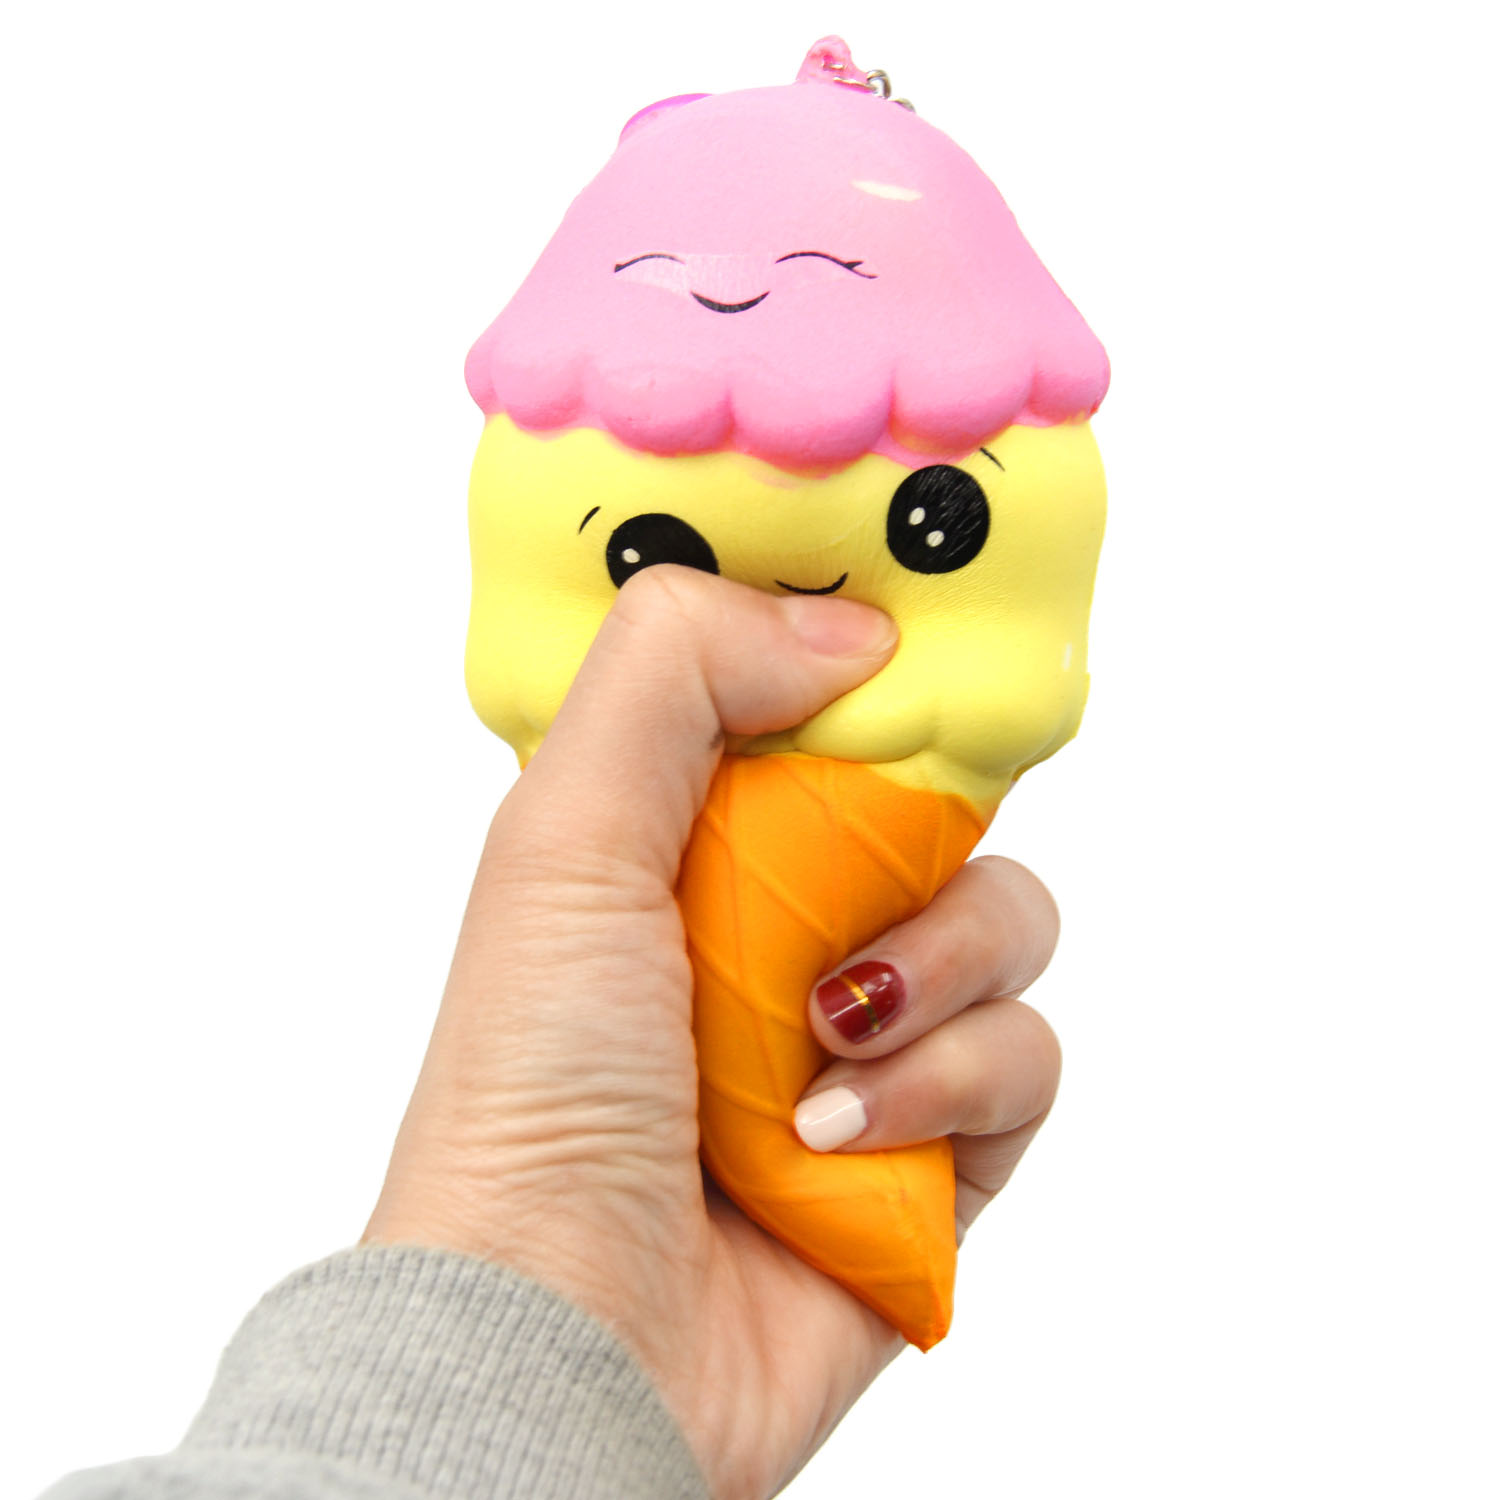 Satkago Cute Kawaii Squishy Ice Cream Cone Keychain Pendant Toy Slow Rising for Kids Adult Relieves Stress Bag Purse Phone Decor